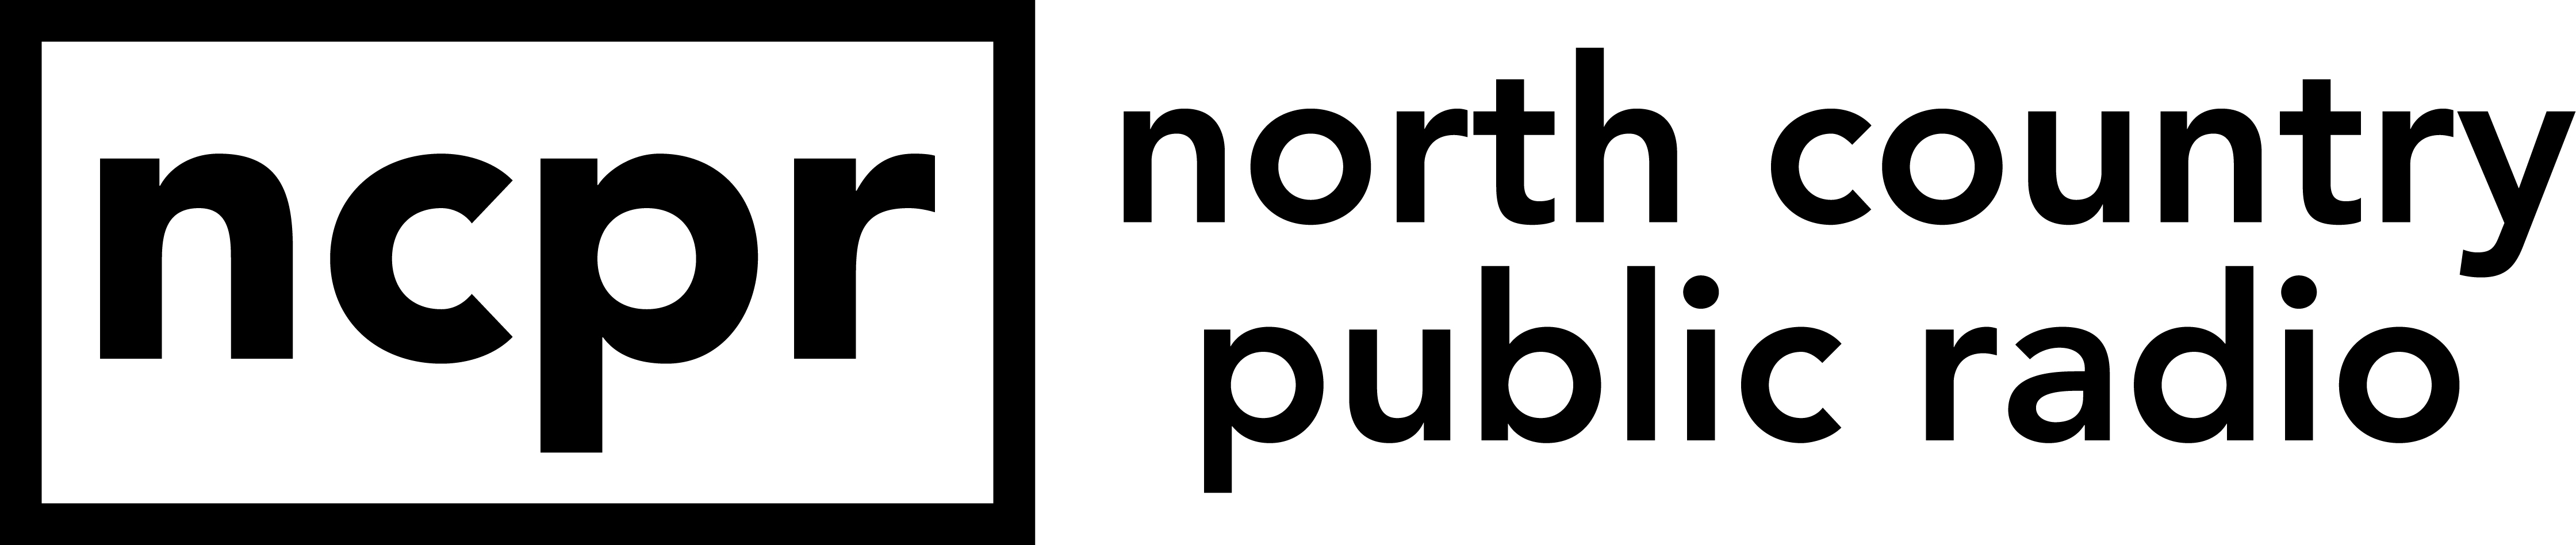 ncpr rectangle logo_clear bckgrnd_bw_2 l